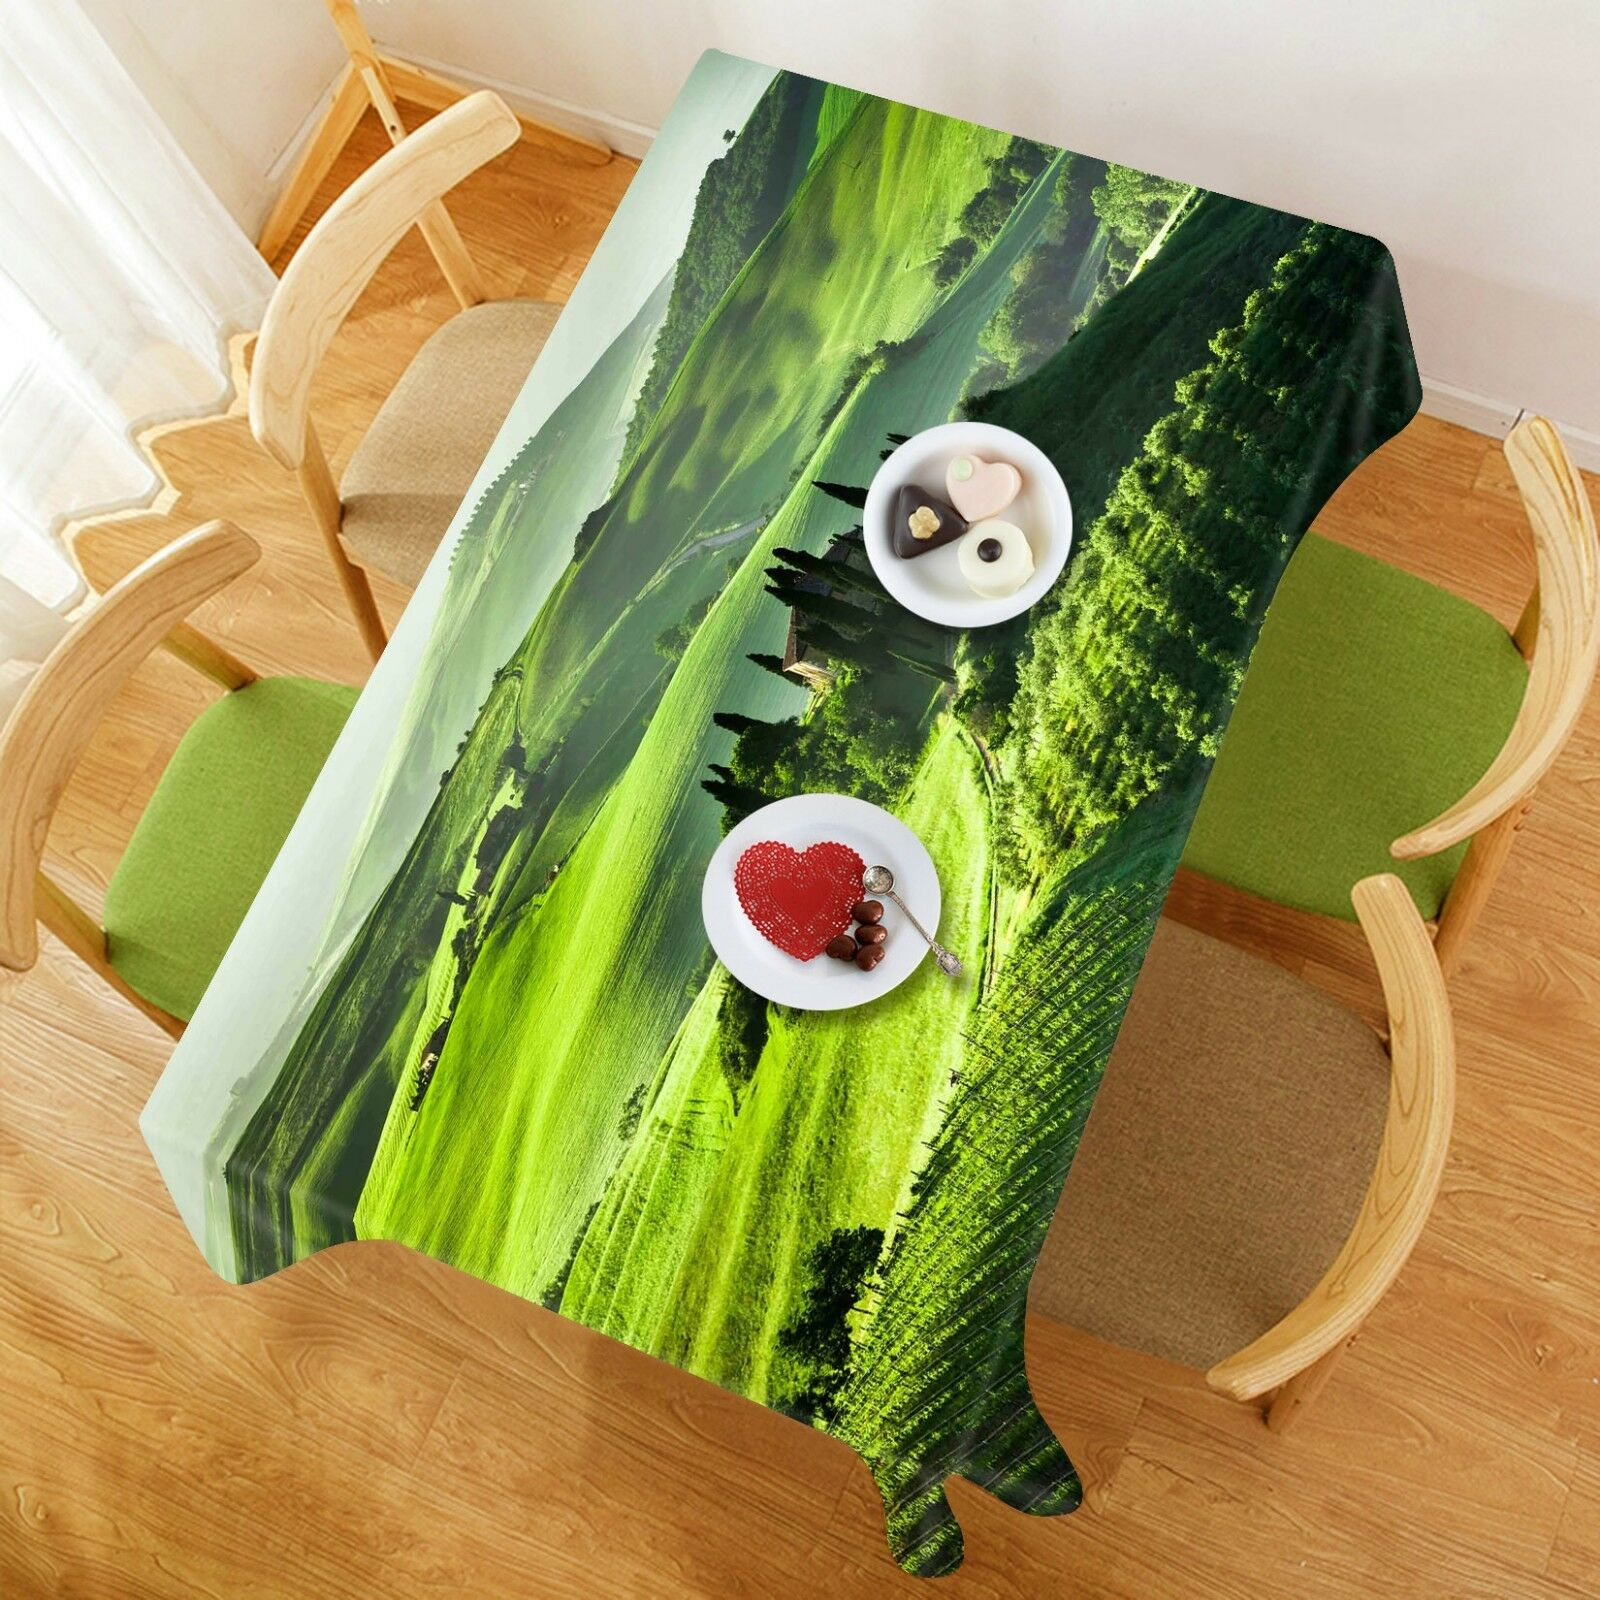 3D vert Hill 15 Tablecloth Table Cover Cloth Birthday Party Event AJ WALLPAPER